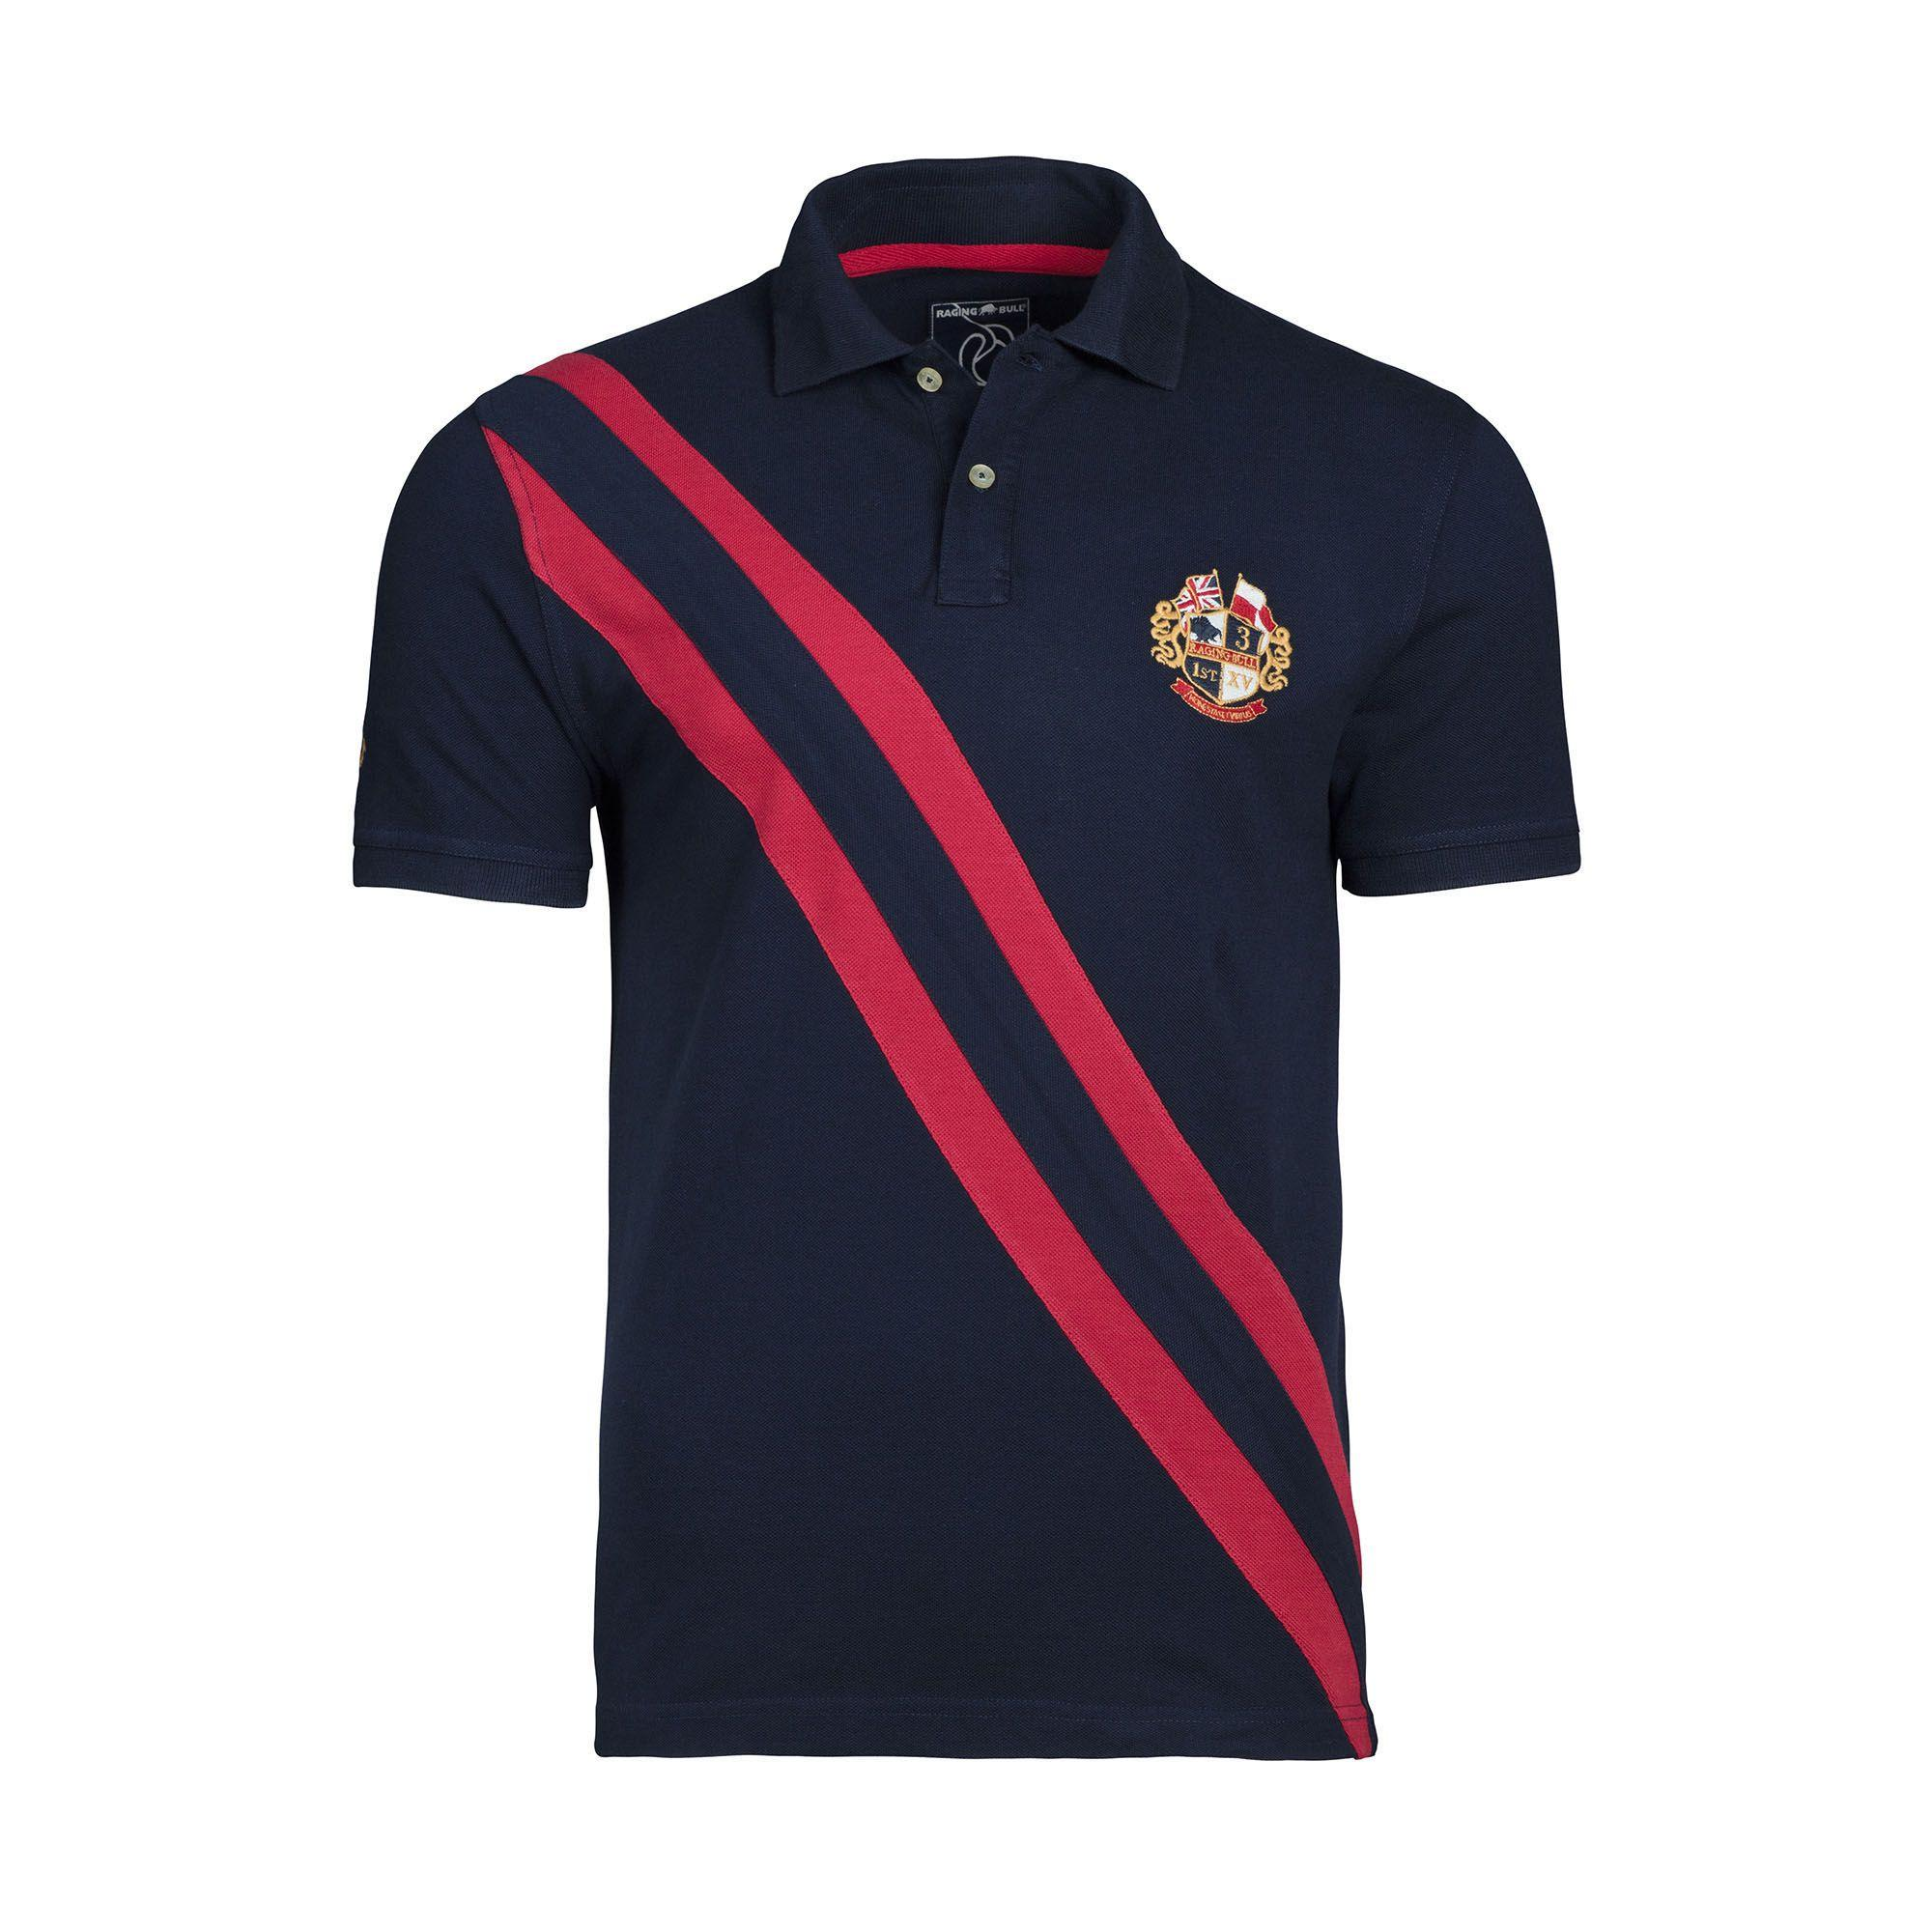 14af1542 Raging Bull - Blue Navy Heritage Pique Polo Shirt for Men - Lyst. View  fullscreen